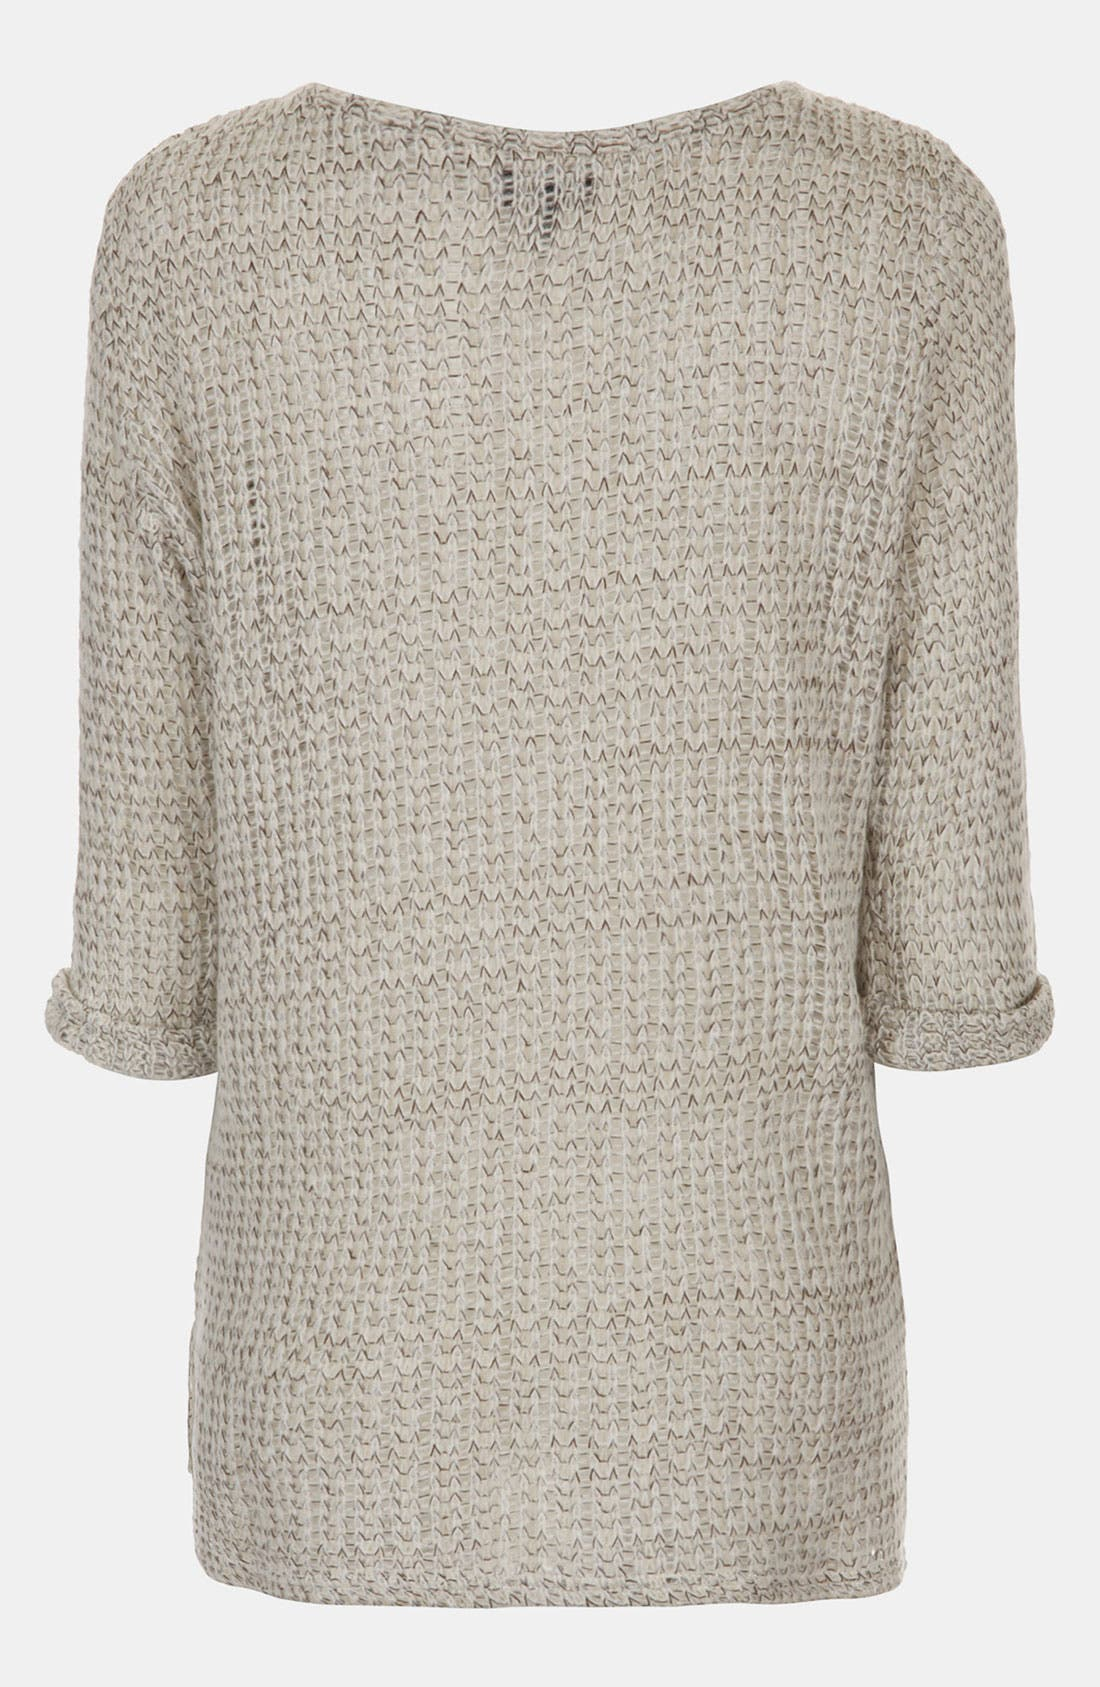 Alternate Image 2  - Topshop Maternity Fisherman Sweater